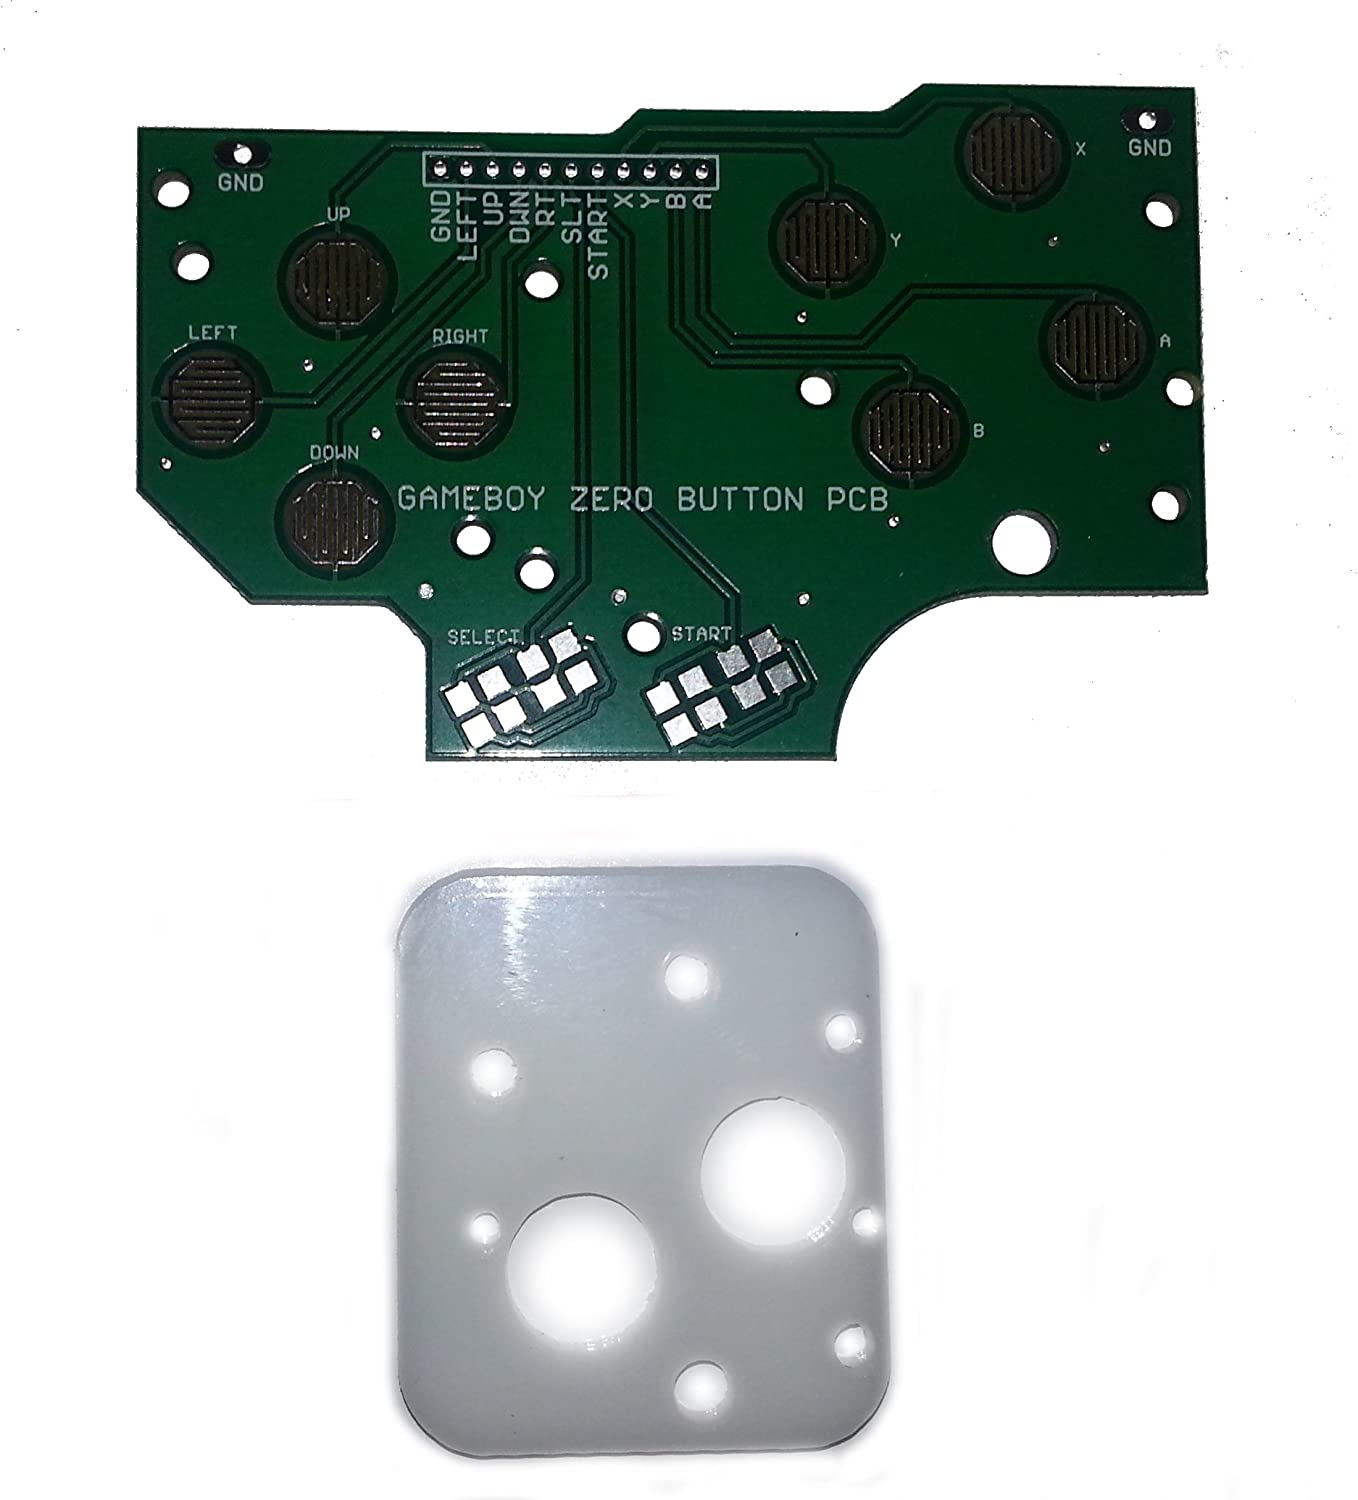 4 Button Pcb For Gameboy Dmg 01diy Pi Zero Made In Usa Making Systems Circuit With Grounds And Hole Guide Byatomic Market Video Games